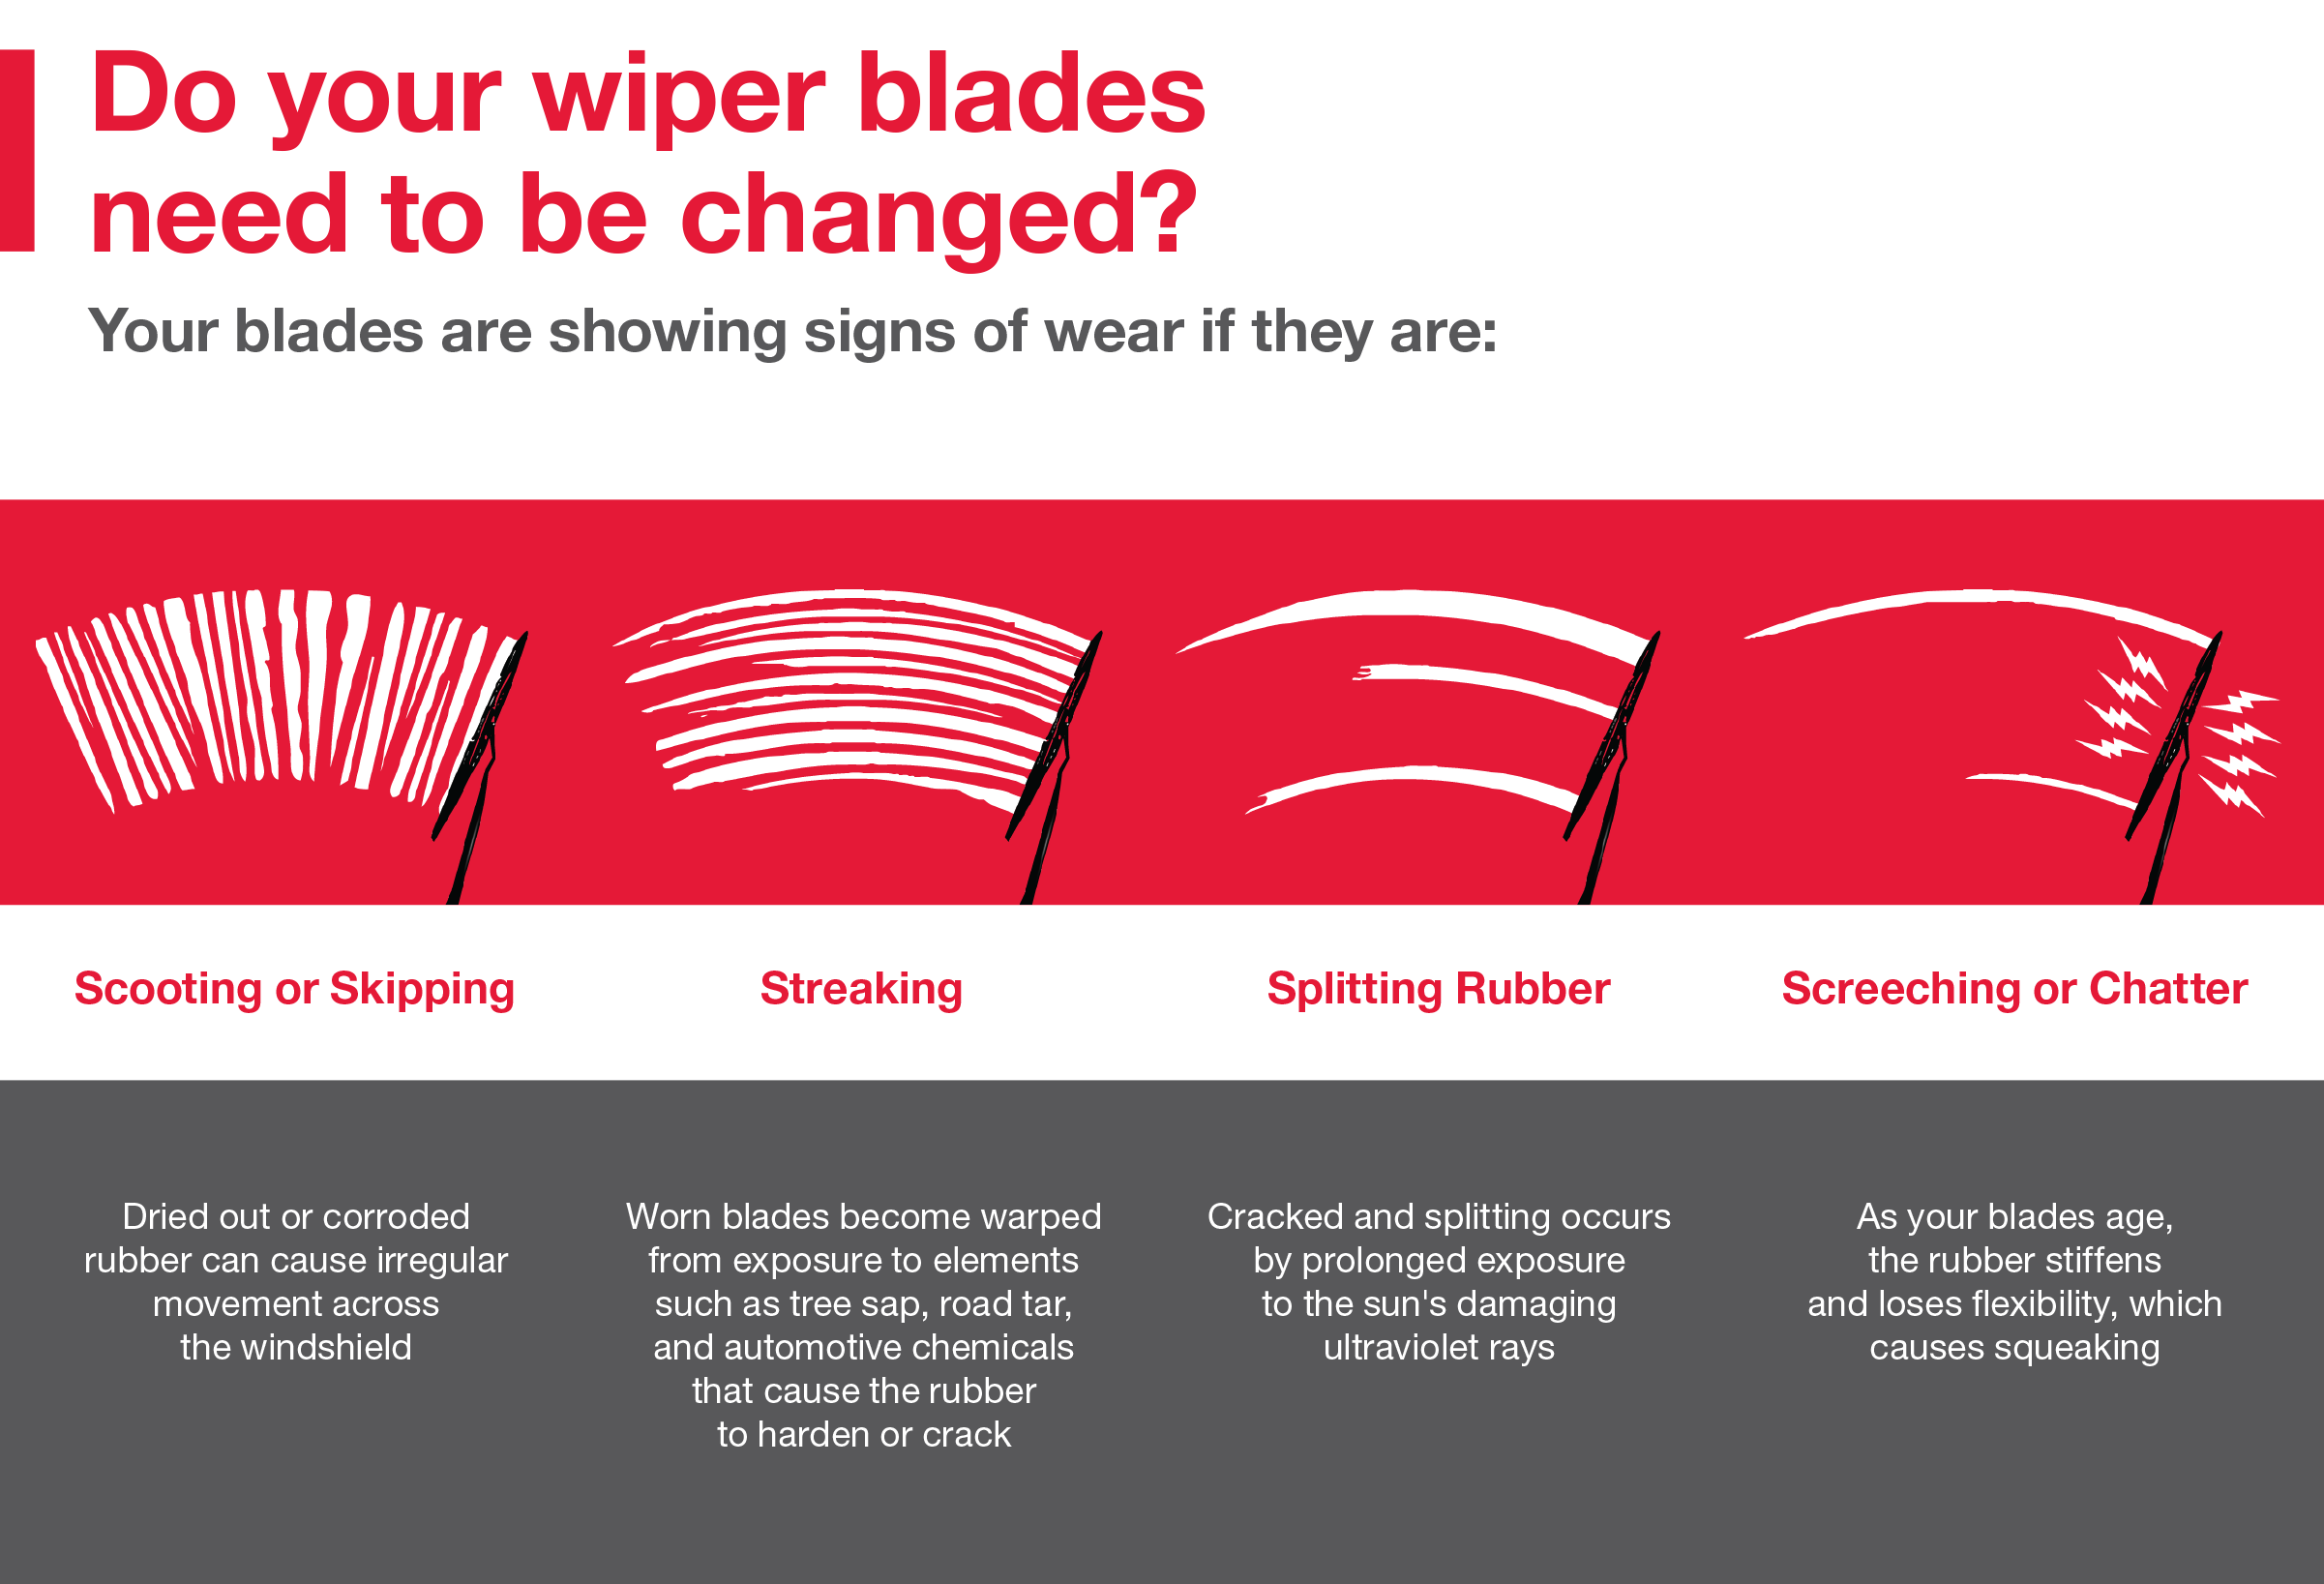 Do your wiper blades need to be changed? Call your local dealer for more info: (614) 924-7033